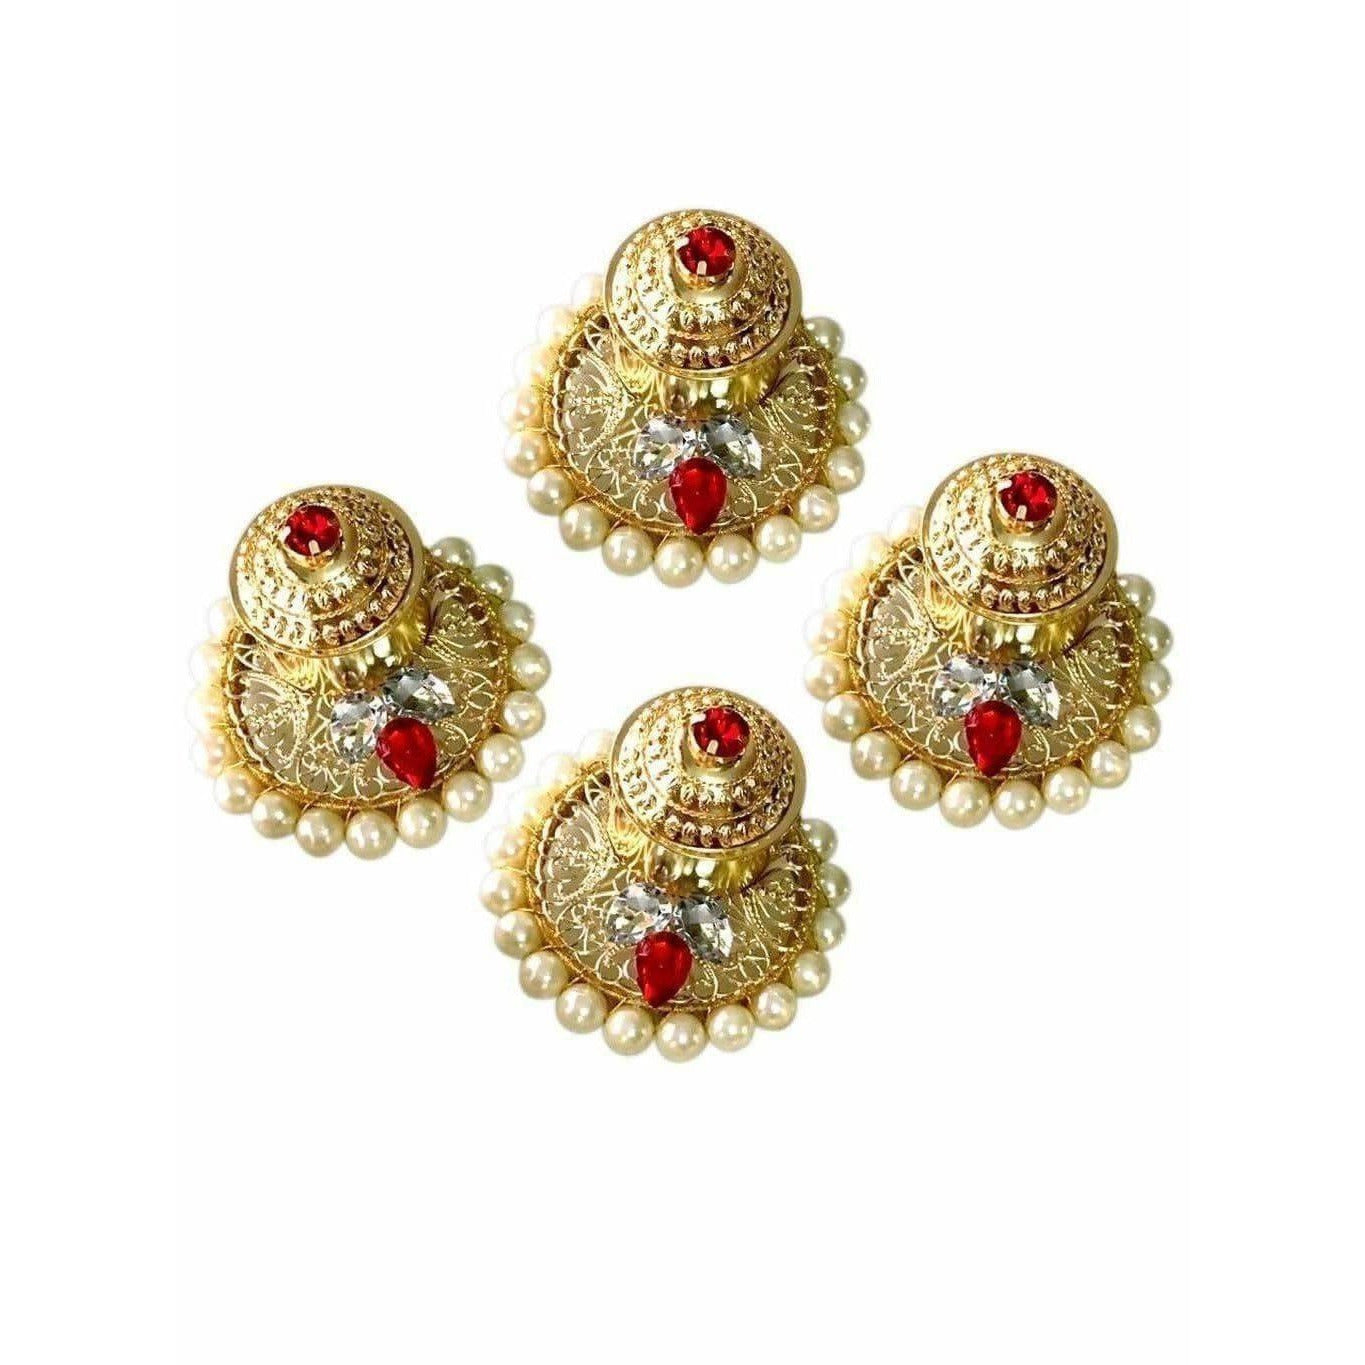 Fancy Kumkum Holders with Pearls and Kundans - 1 Piece - Dista Cart